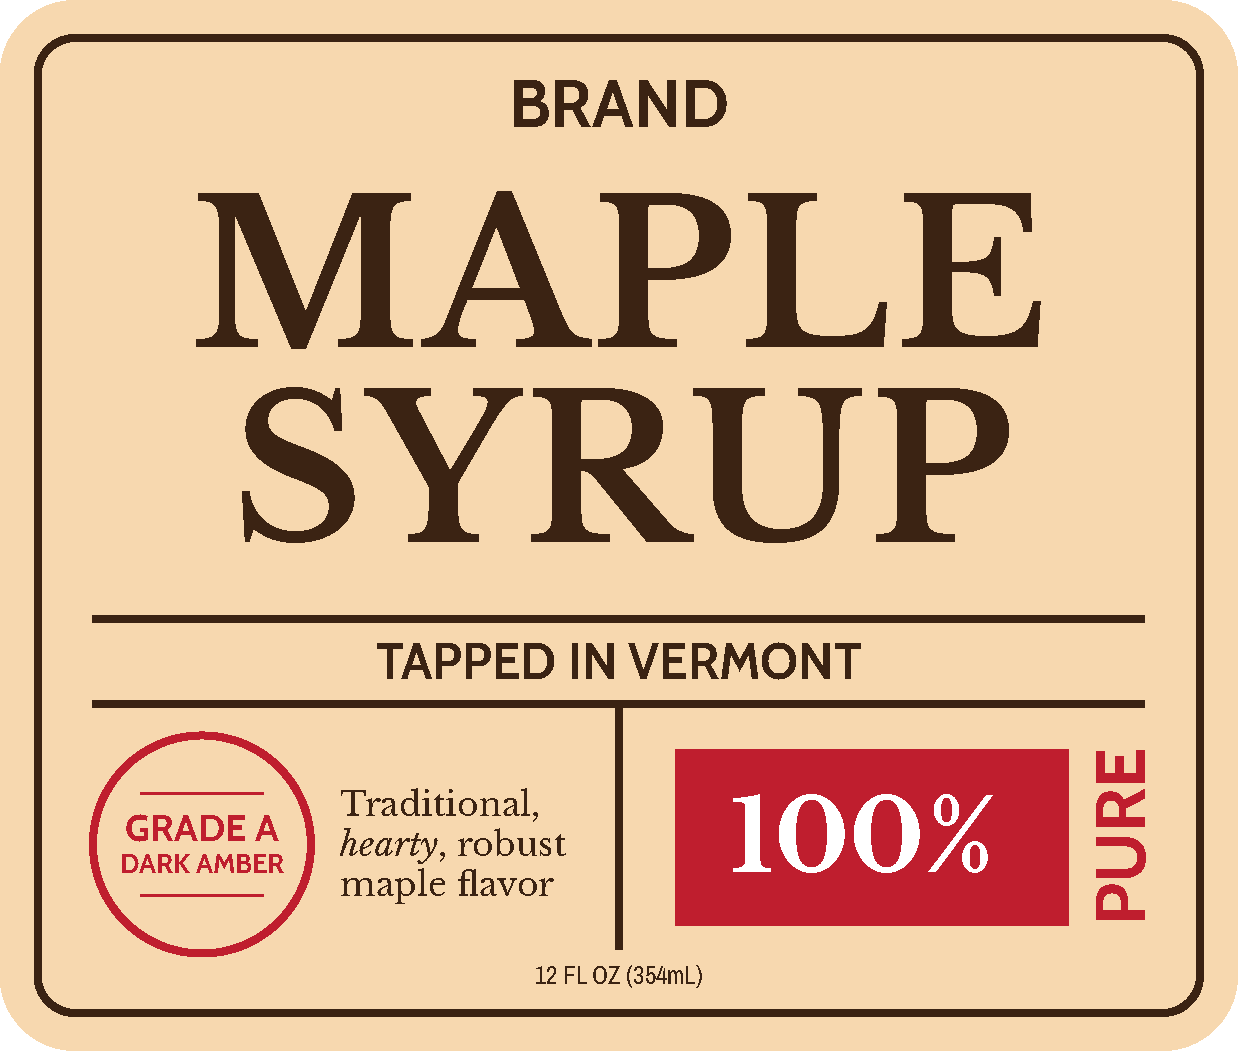 Syrup Tradition